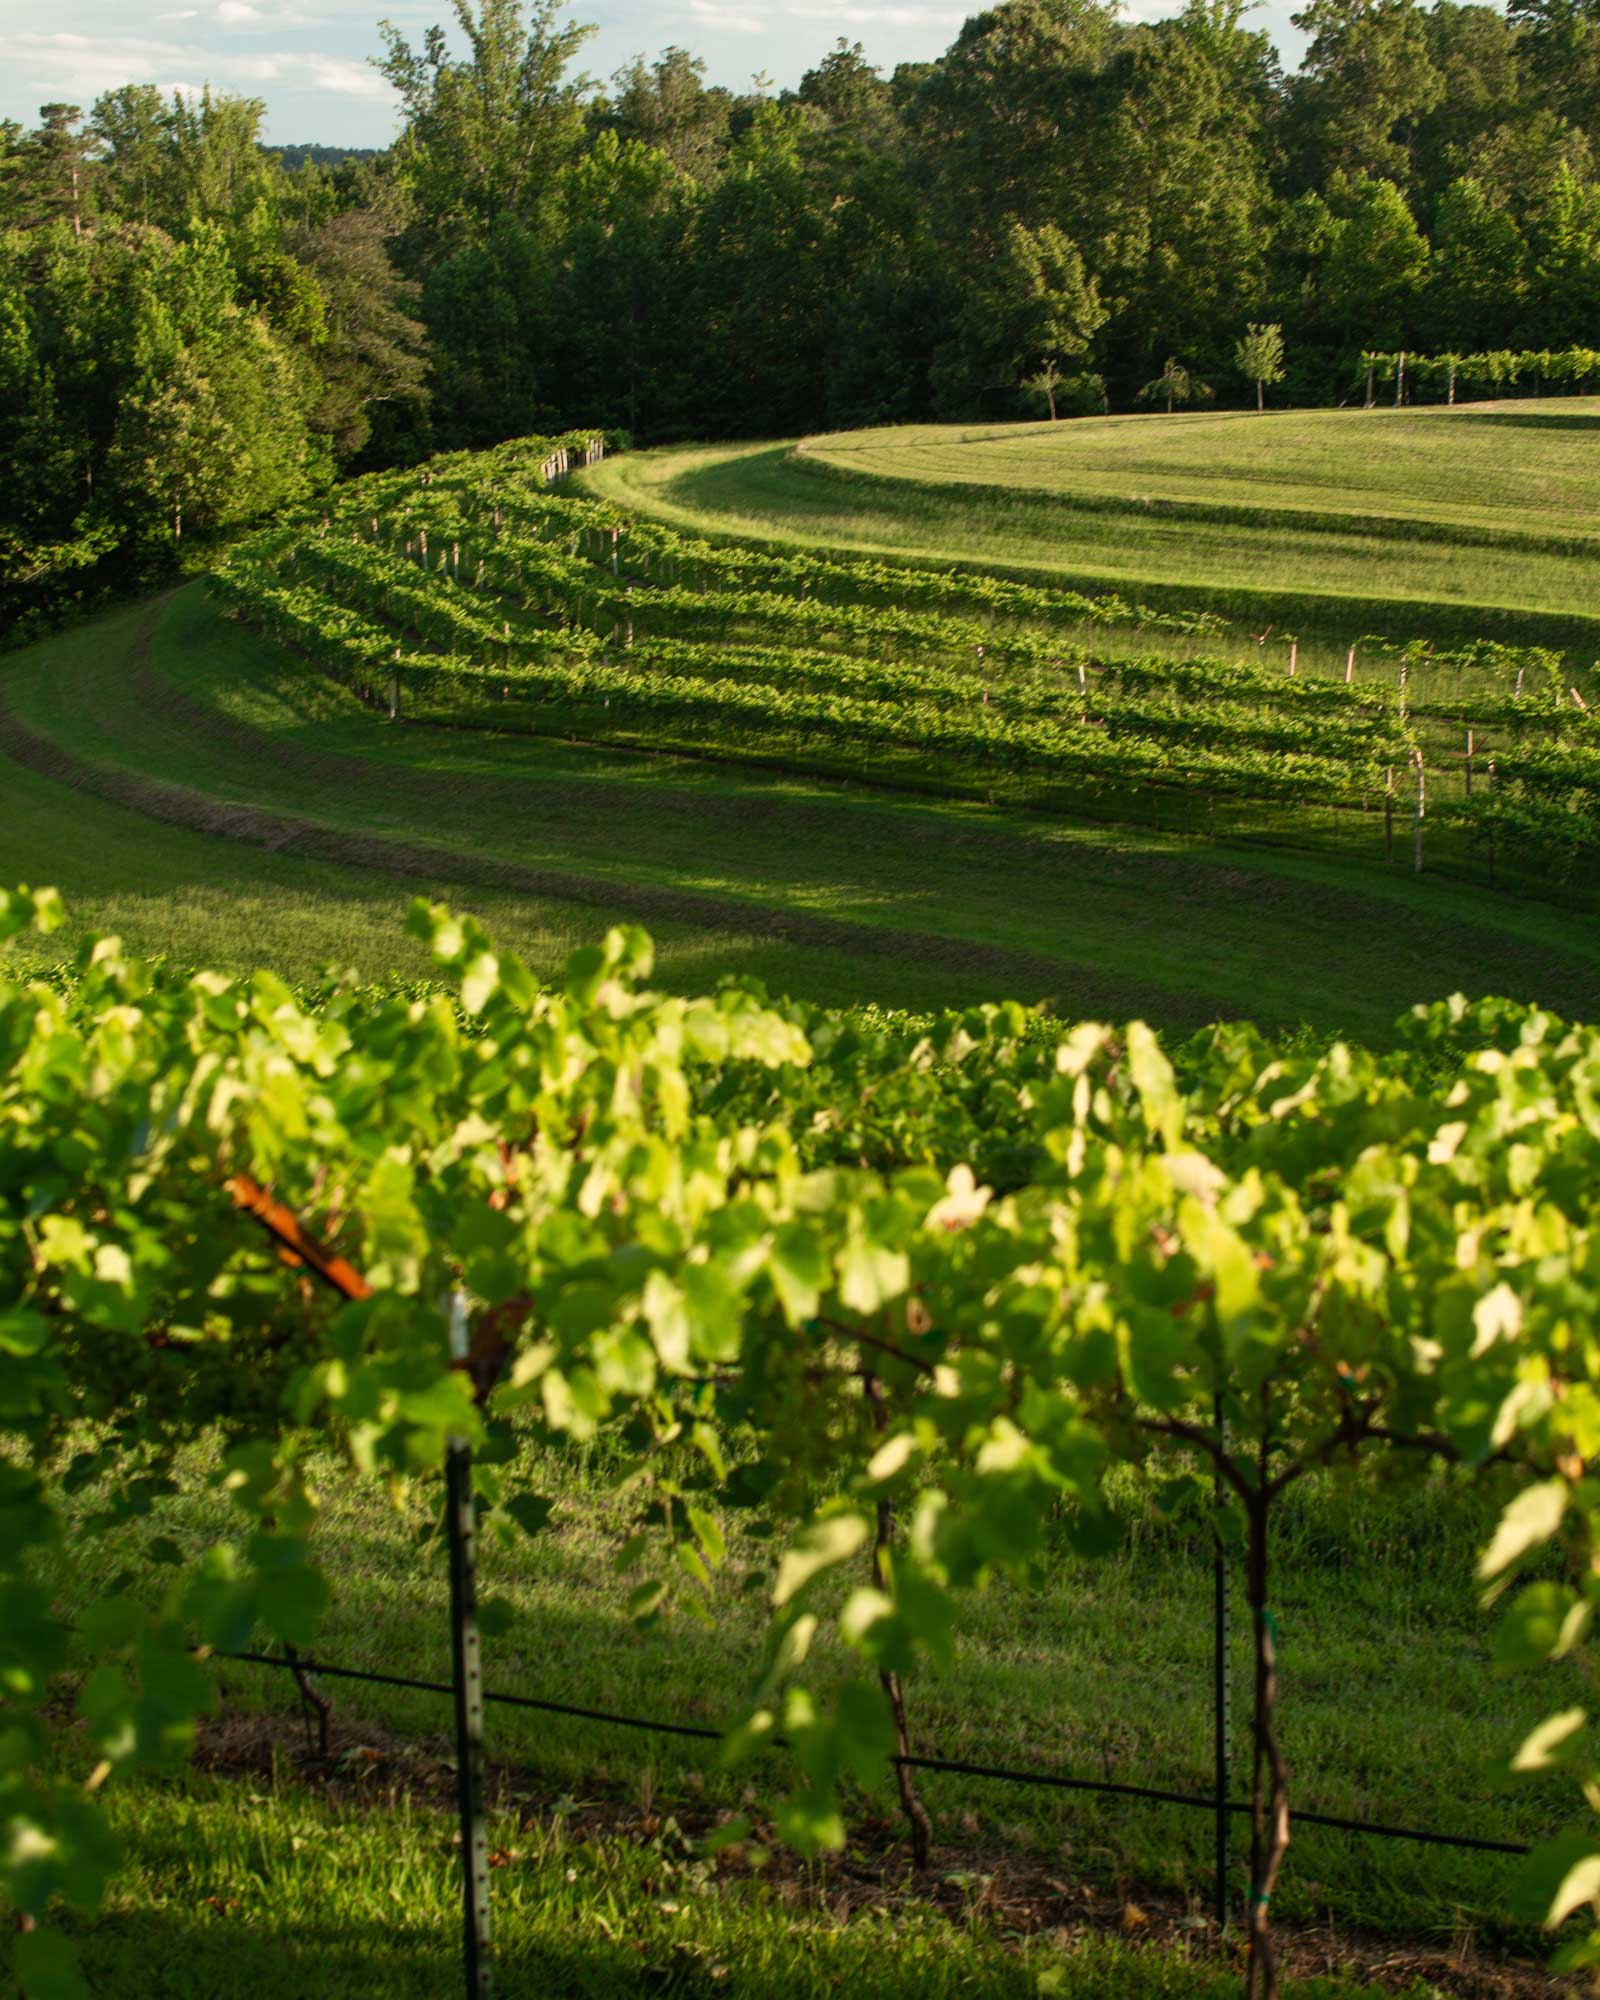 Grapevines in front of a hill